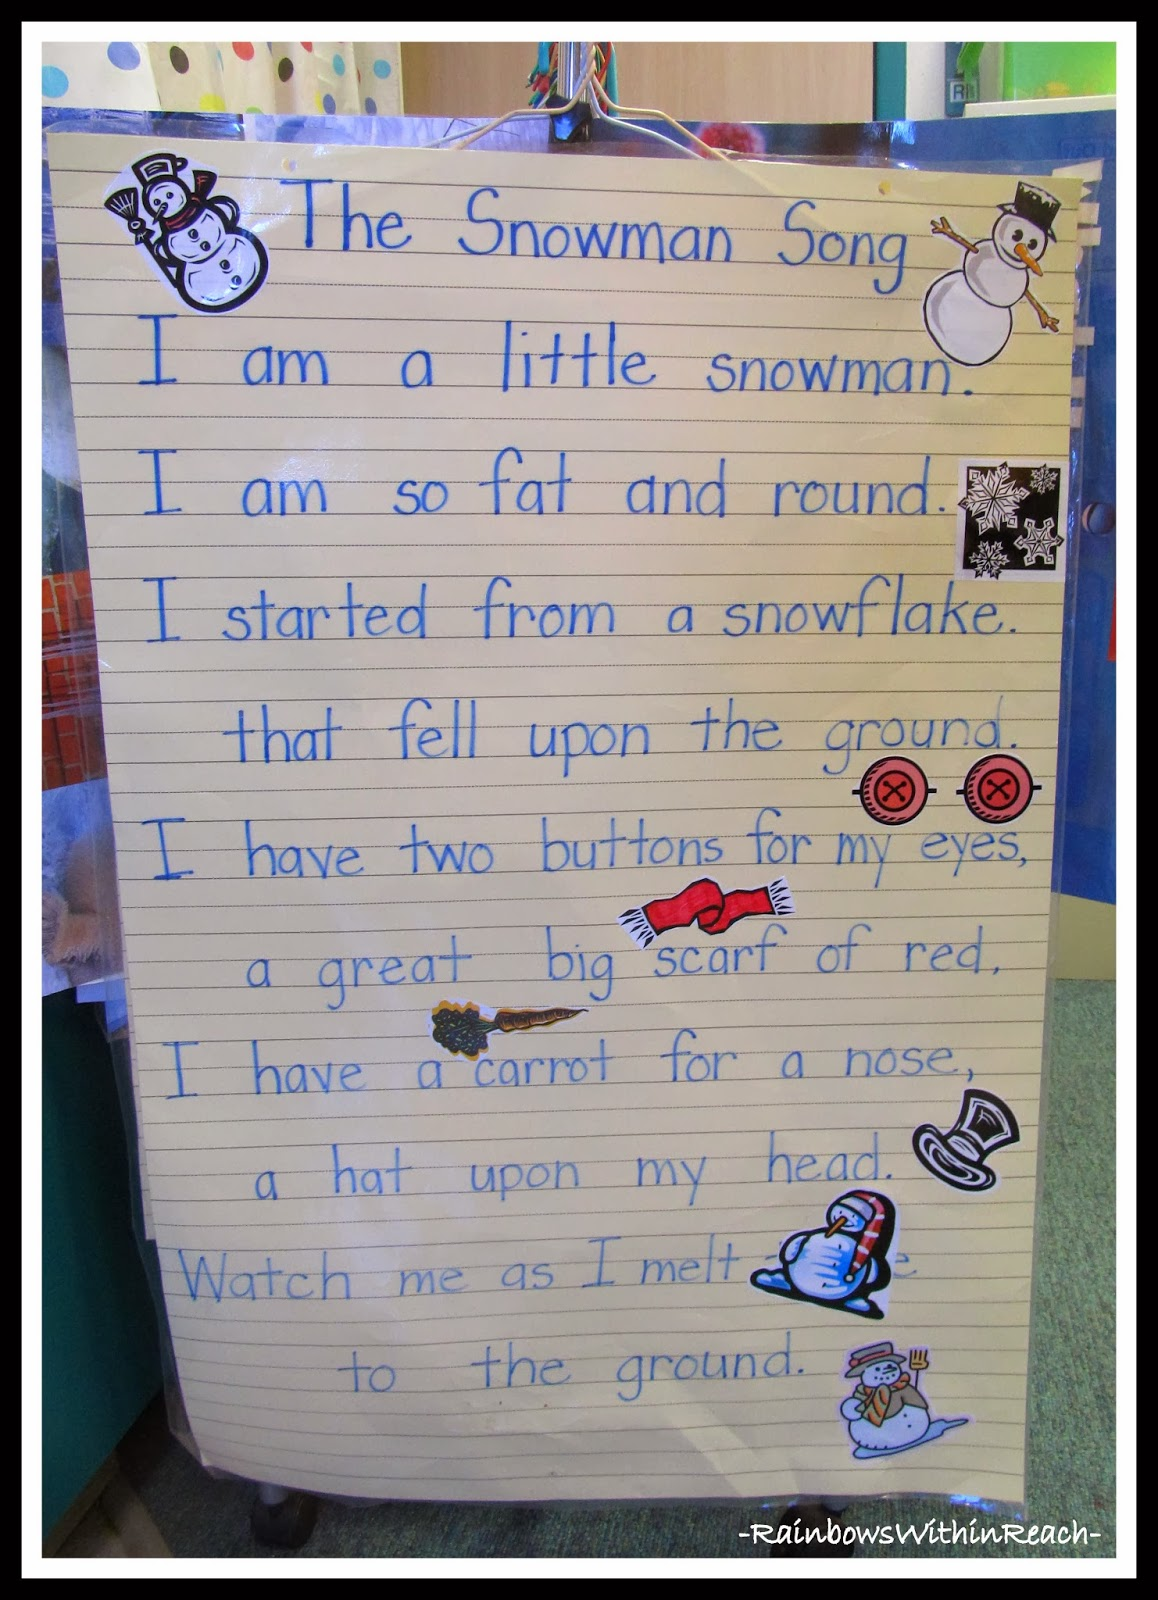 The Snowman Song Anchor Chart Poem via RainbowsWithinReach